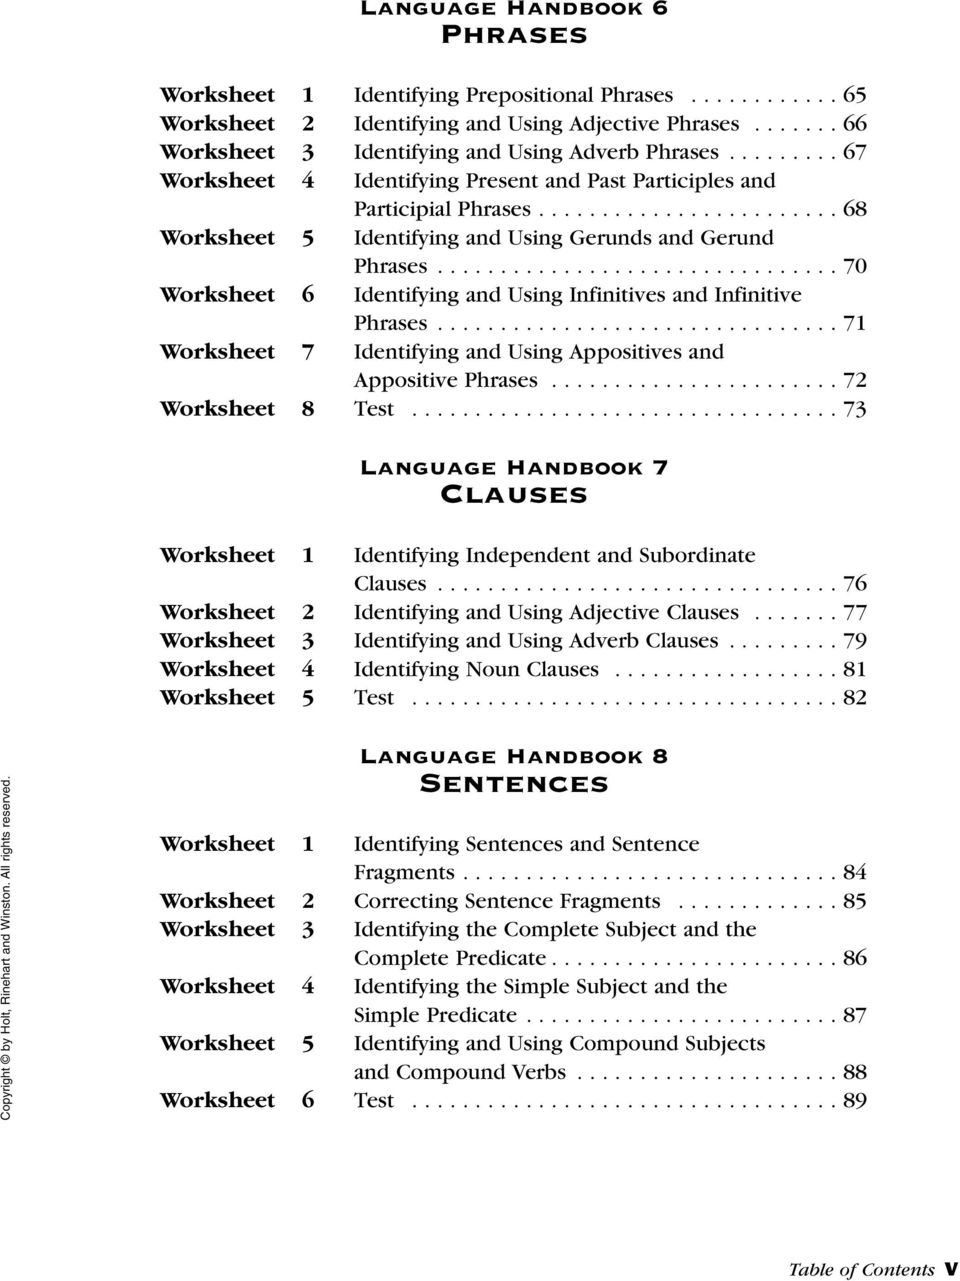 Language Handbook Worksheets Pdf